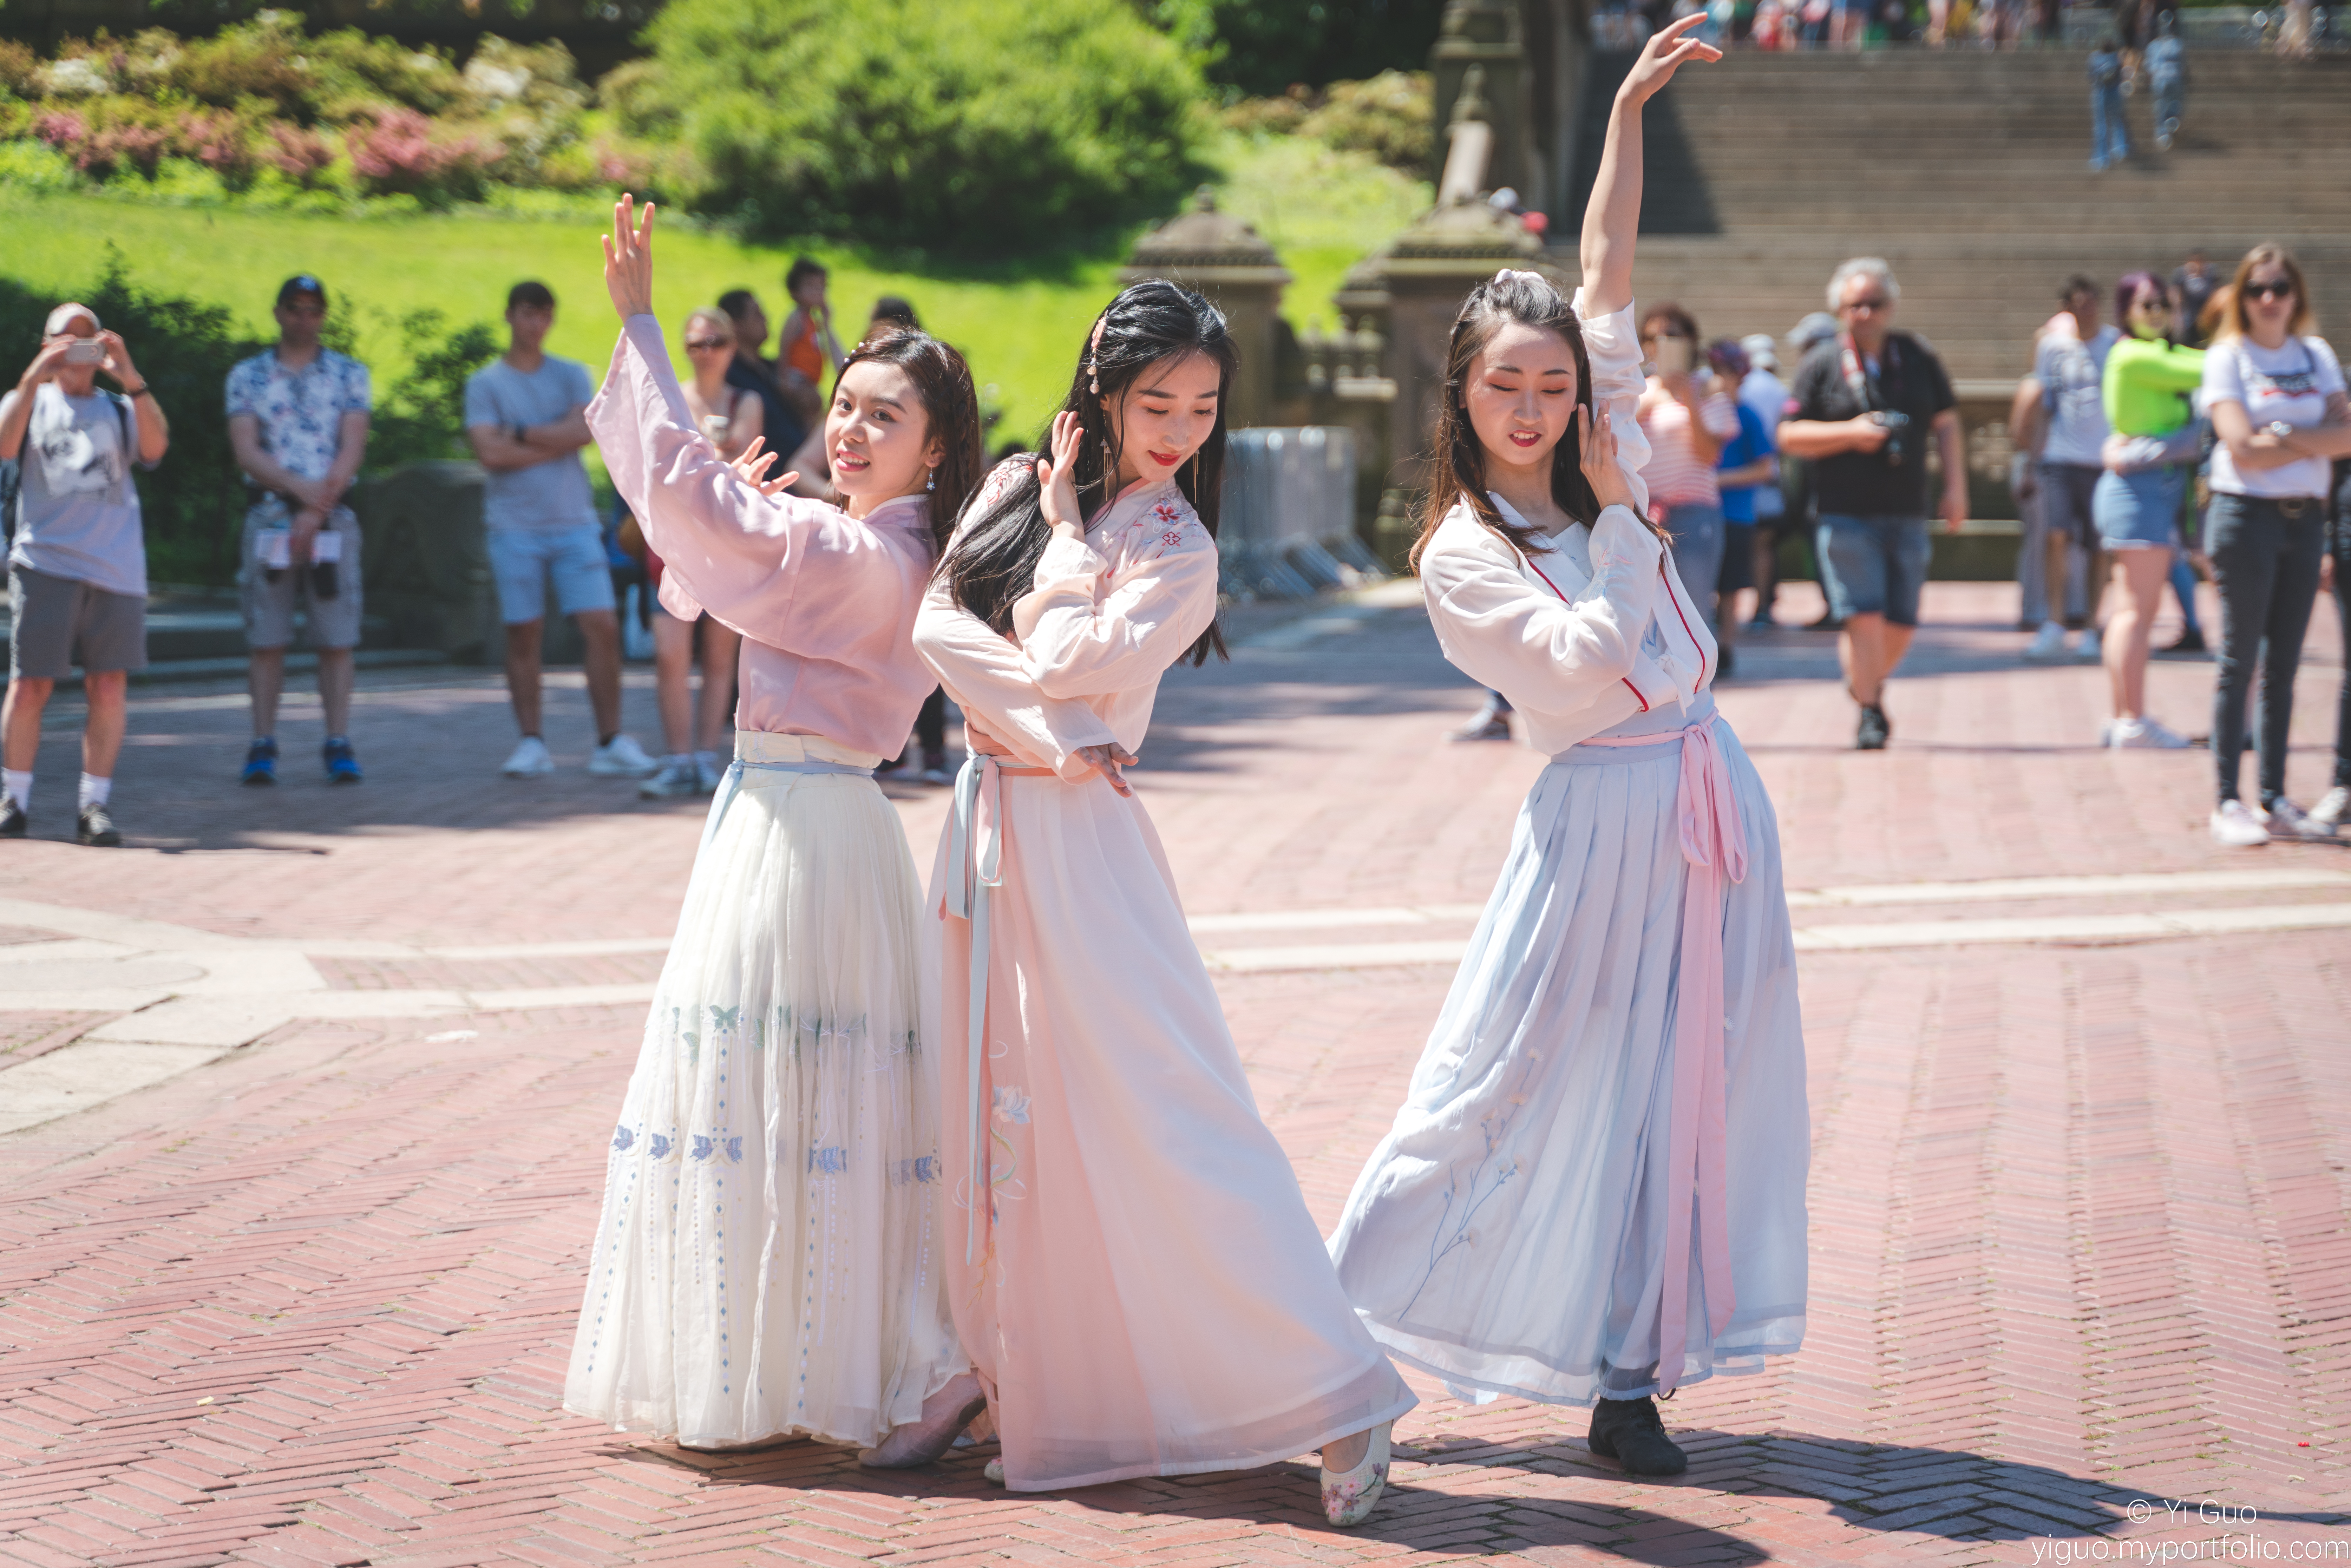 Hanfu dance performance in New York's Central Park, organized by New York Hanfu Corporation